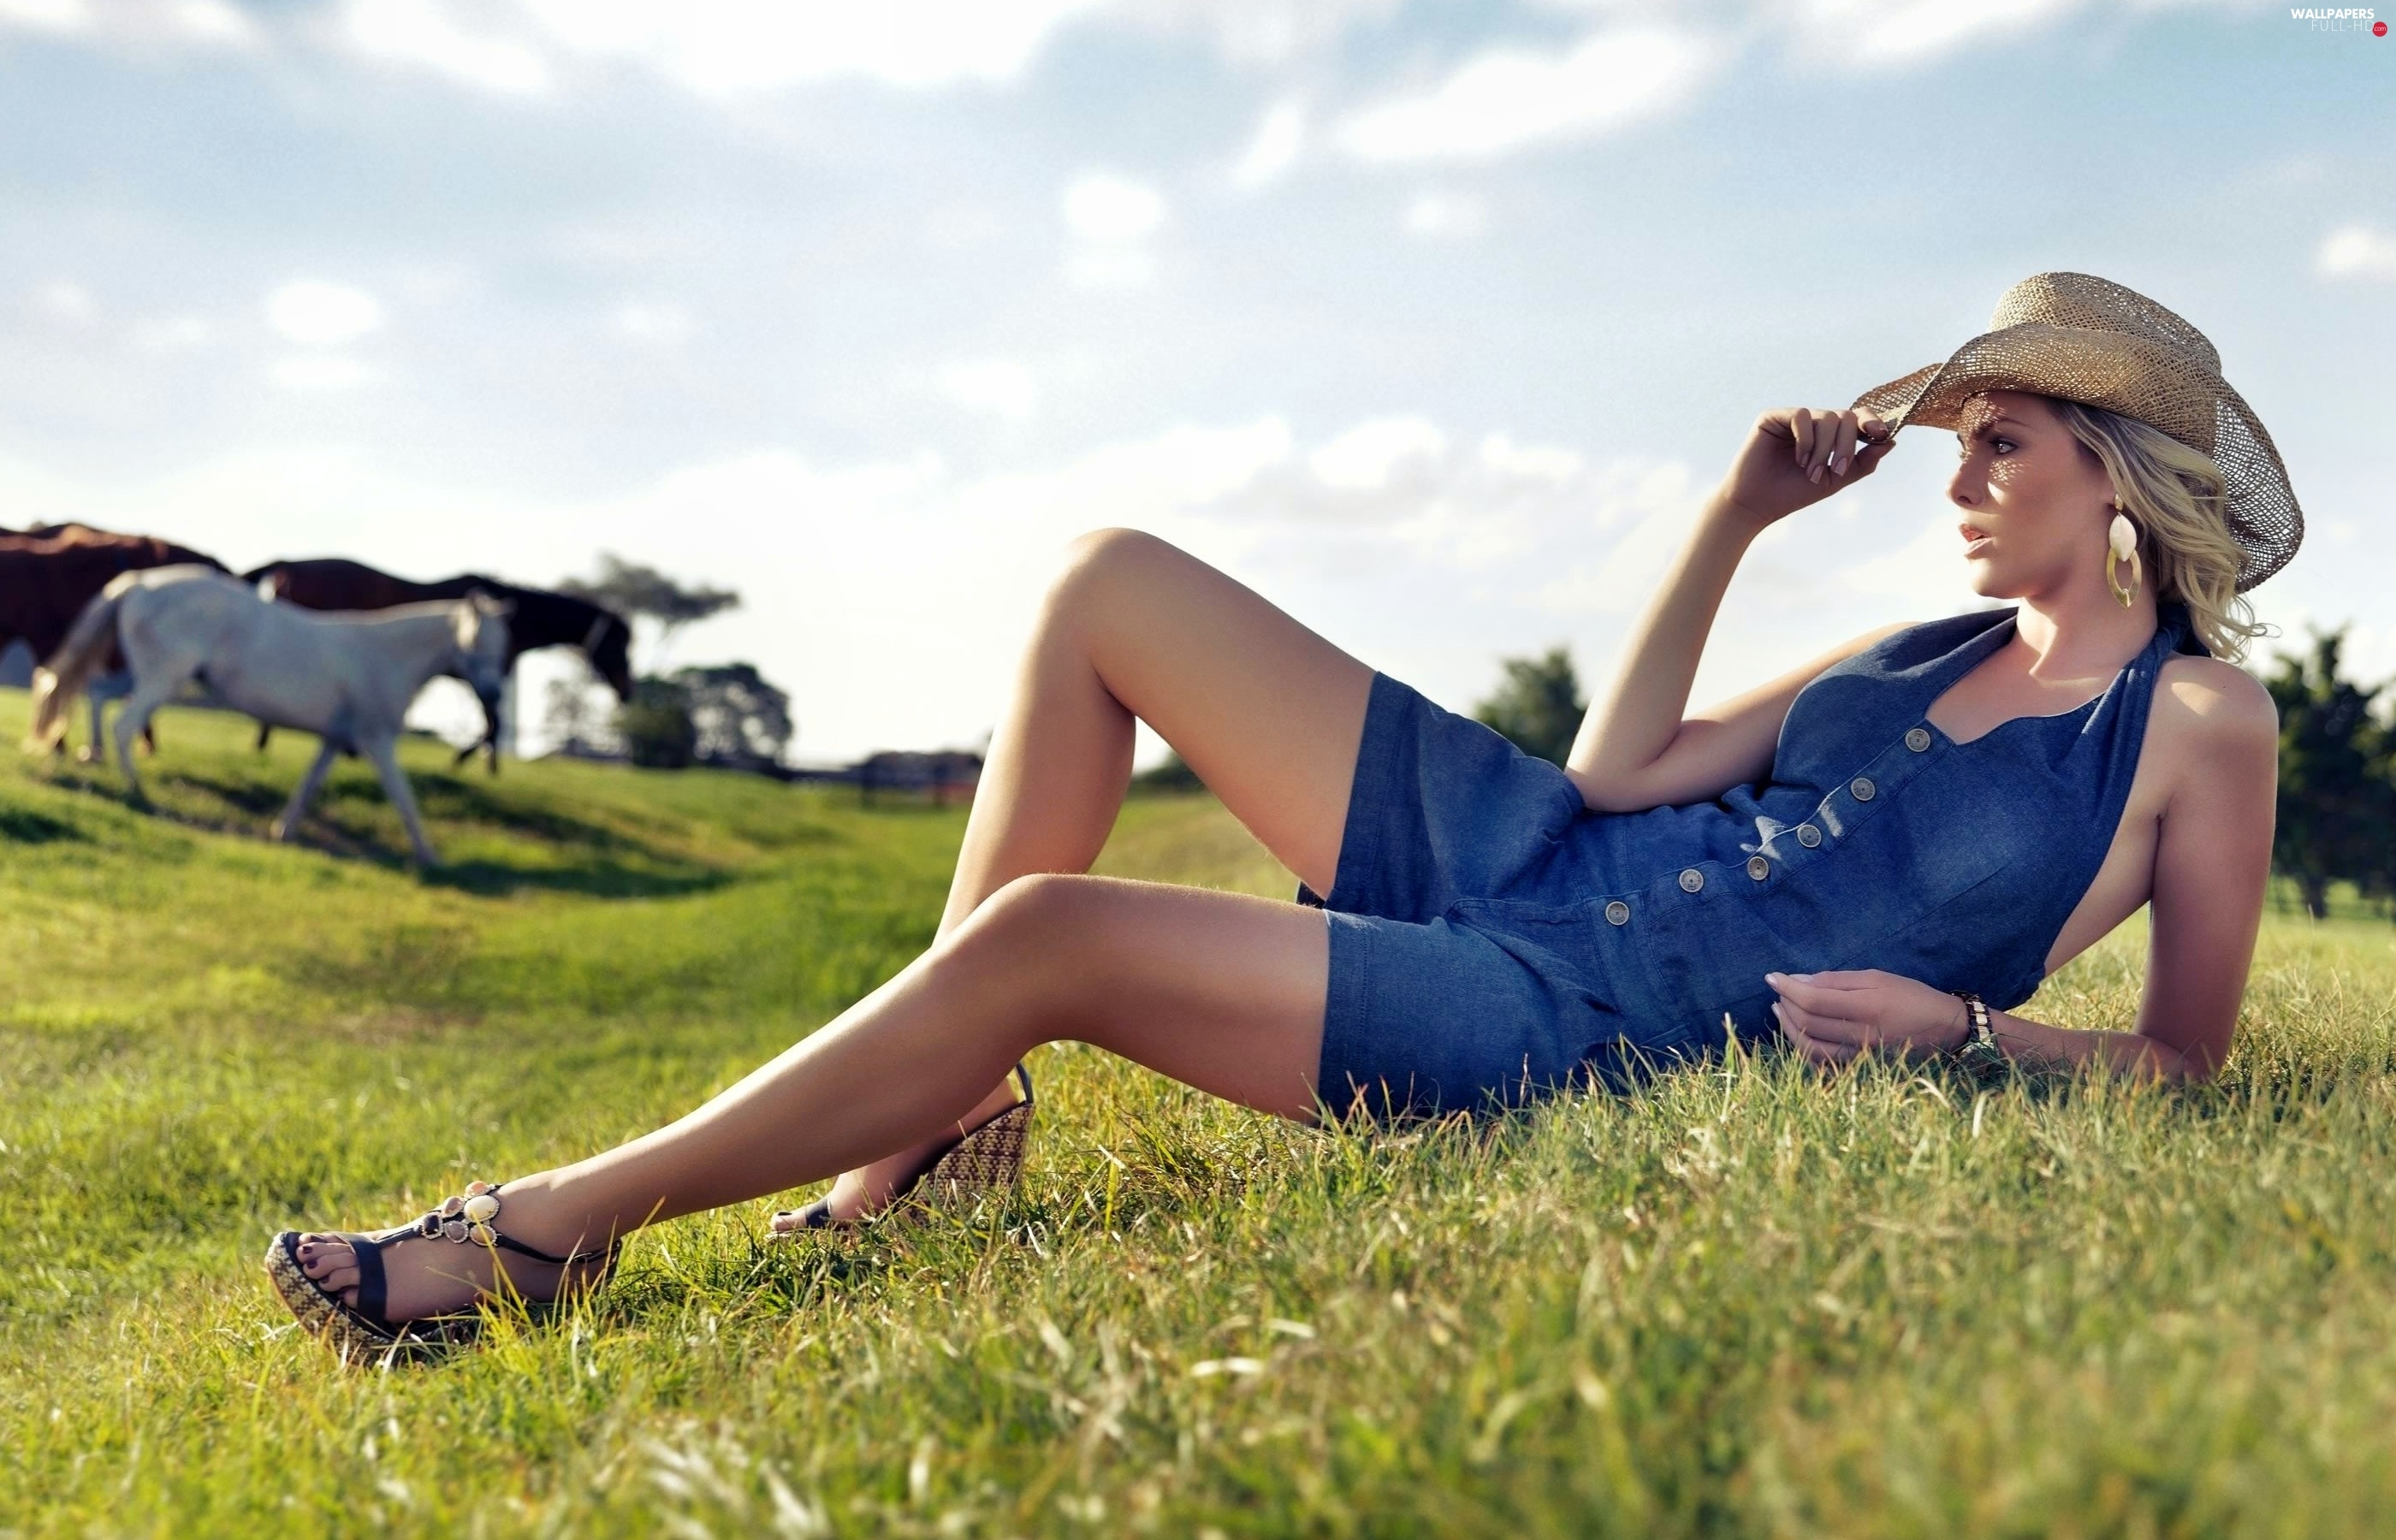 bloodstock, Meadow, Ana Hickmann, model